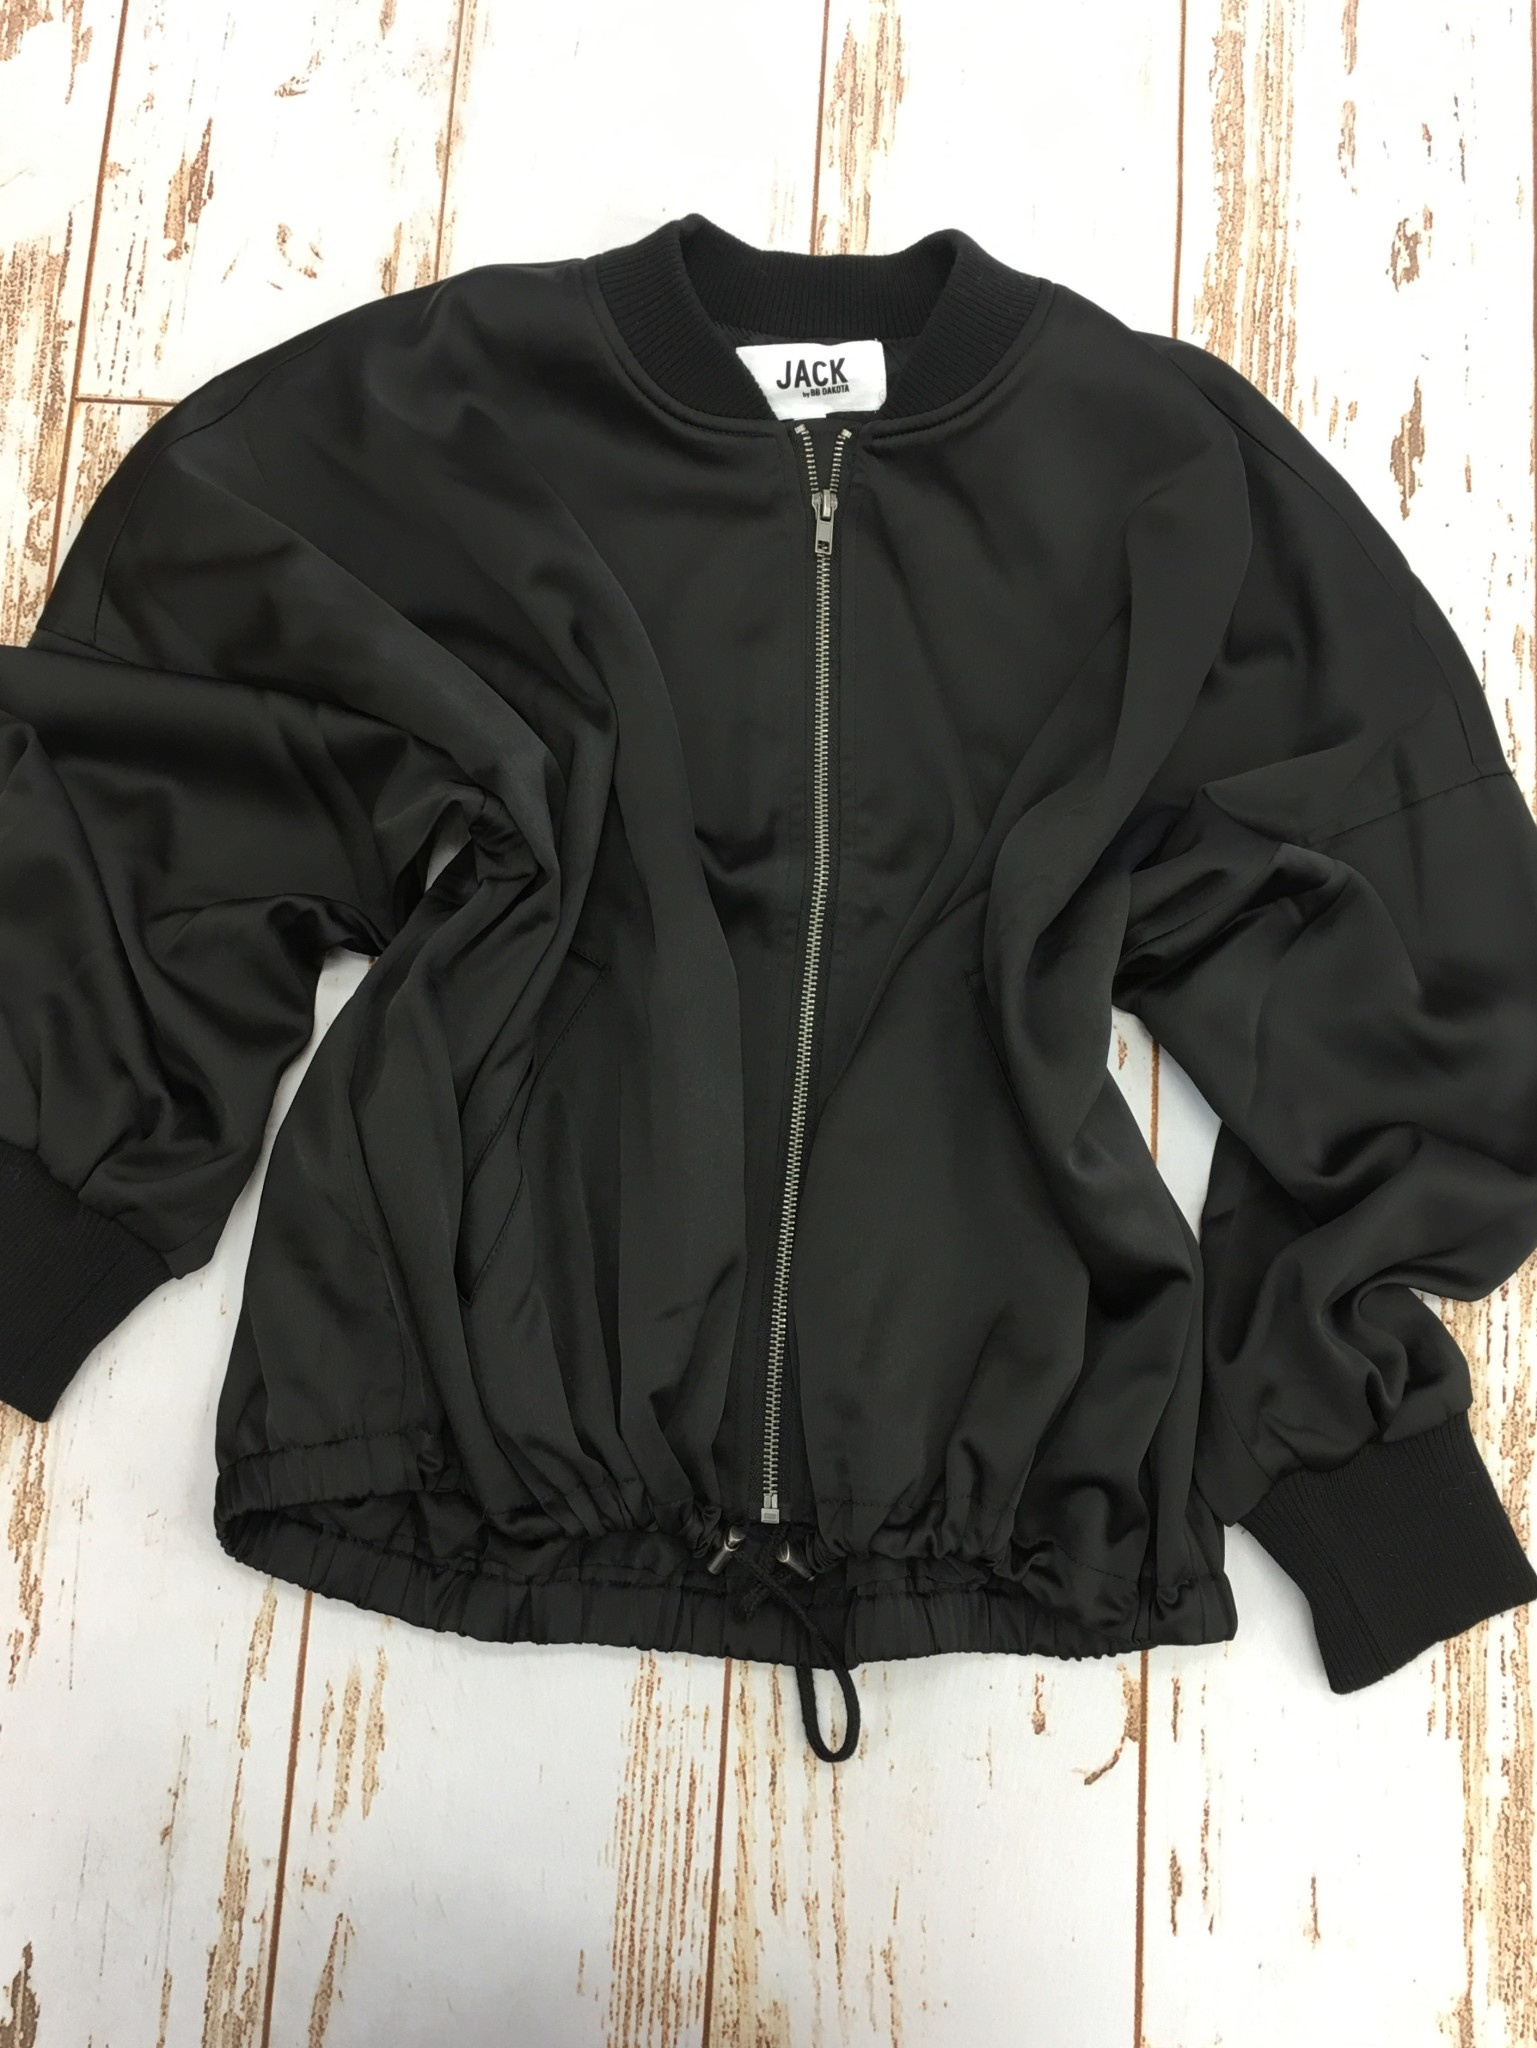 Jack by BB Dakota Black Bomber Jacket